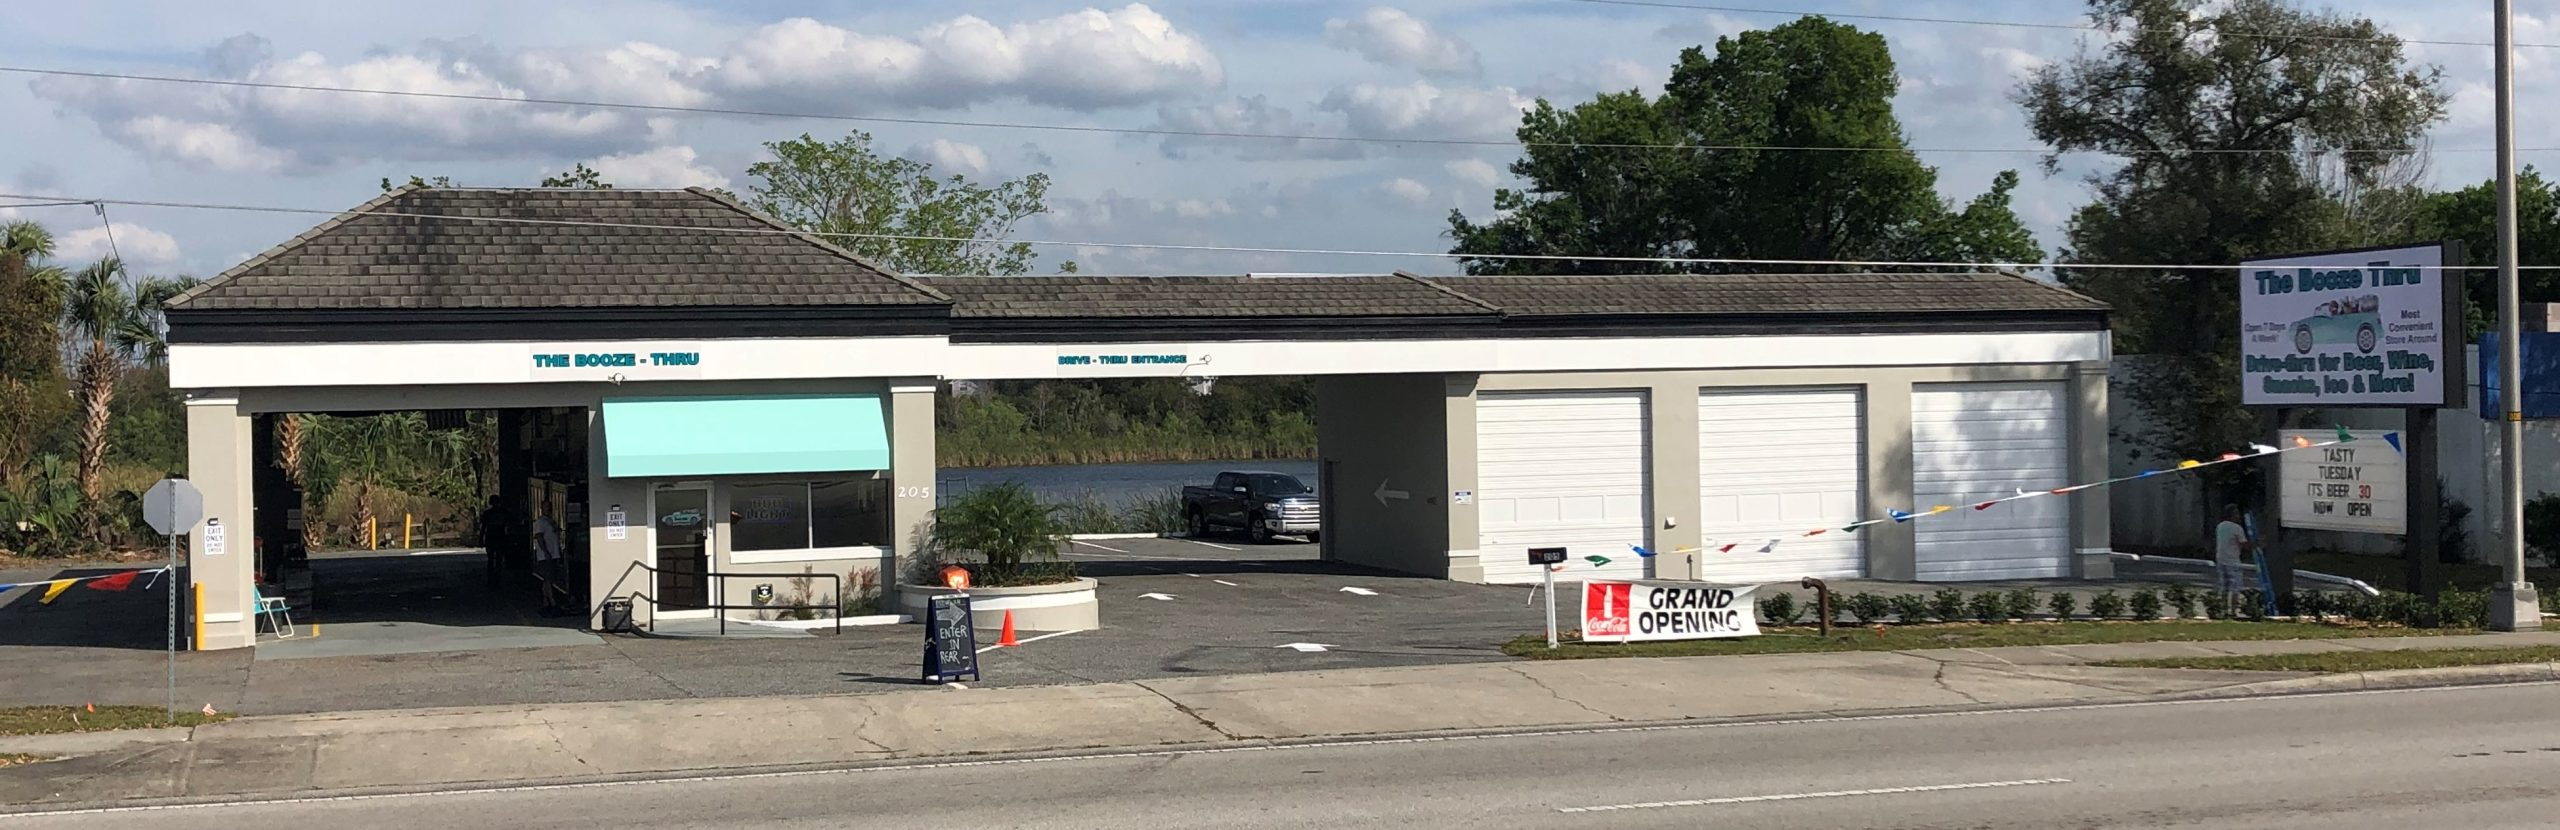 Retail Building with Drive Thru or Development Site for Land Lease